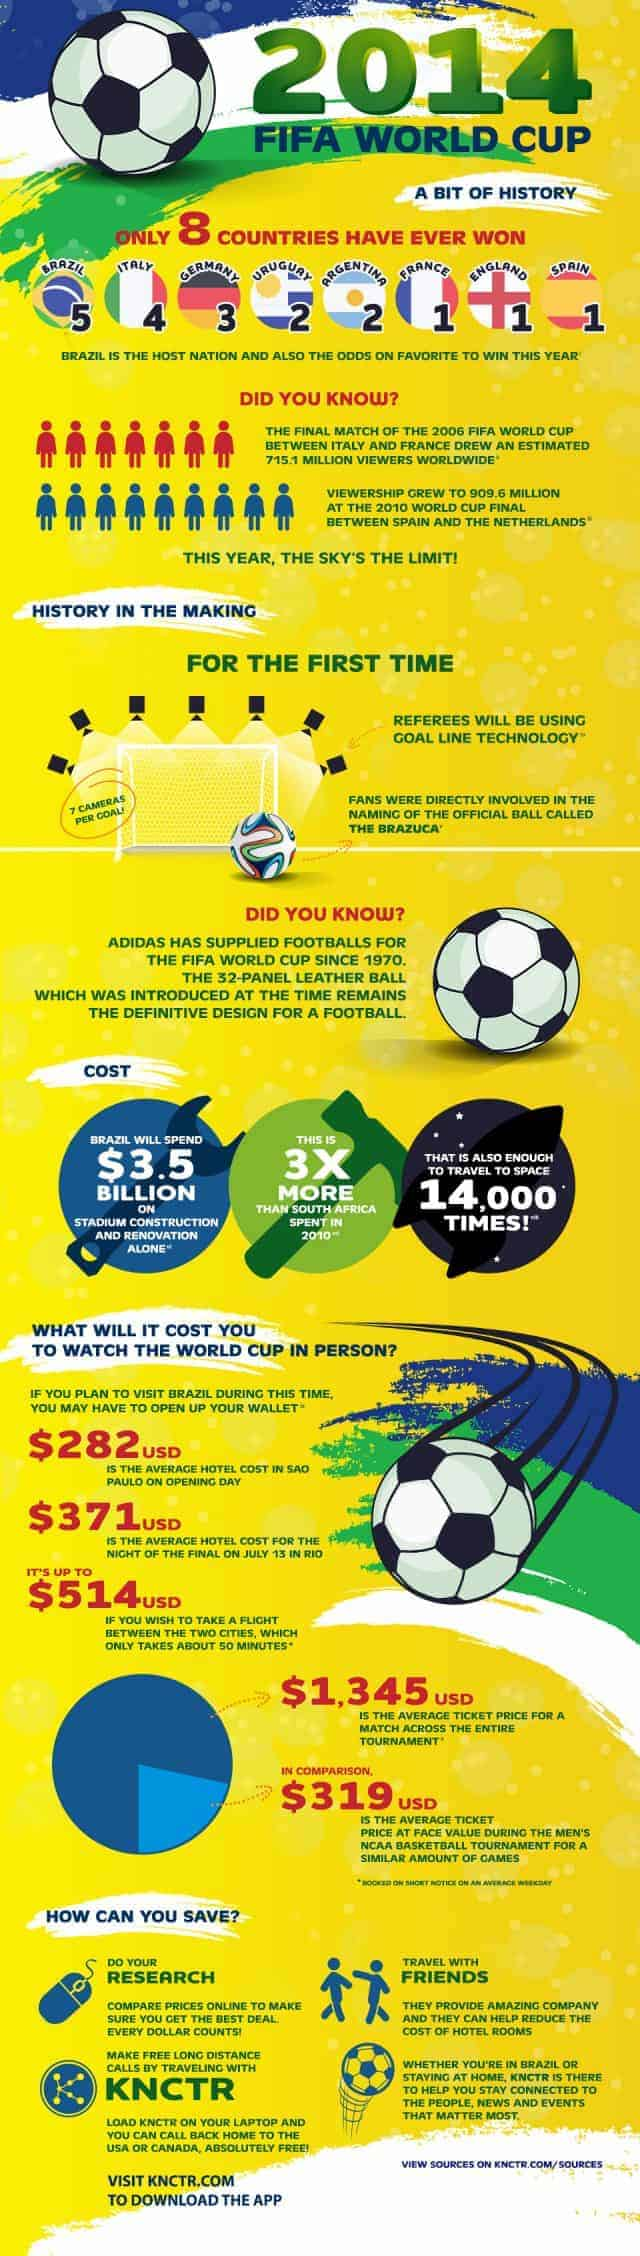 2014 FIFA World Cup [infographic]